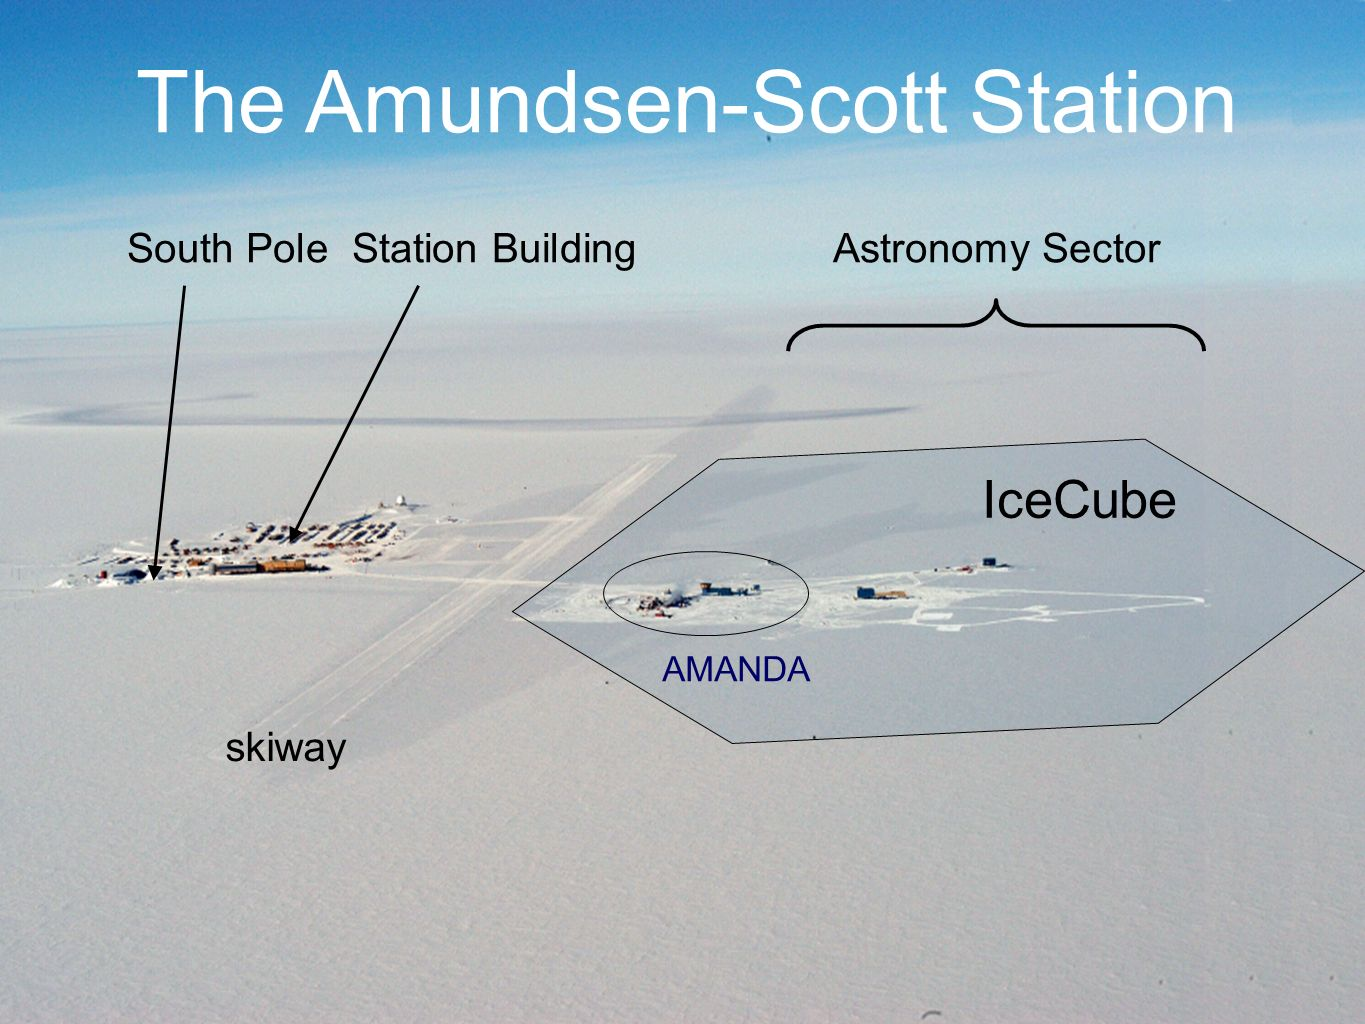 AMANDA IceCube The Amundsen-Scott Station South Pole Station Building Astronomy Sector skiway